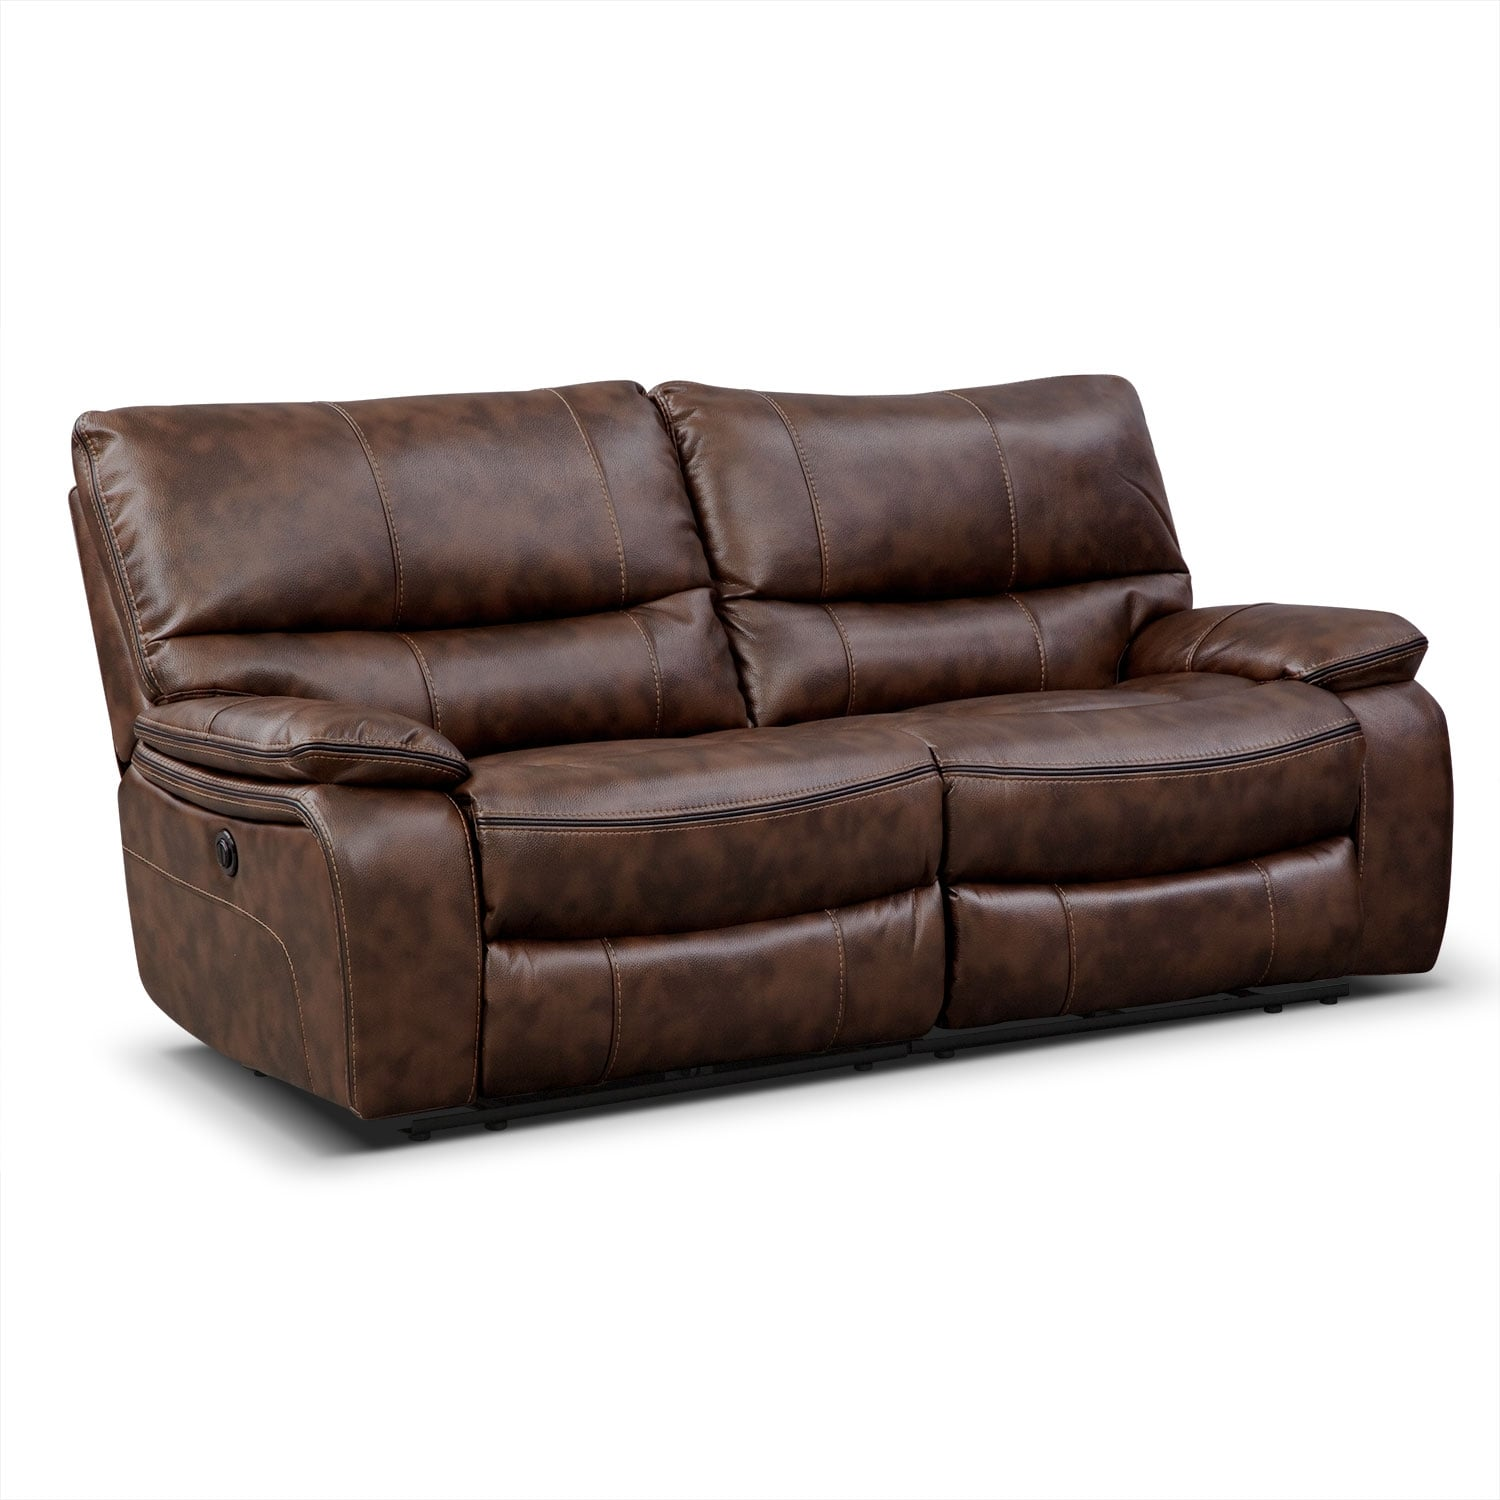 Living Room Furniture - Orlando Dual-Power Reclining Sofa